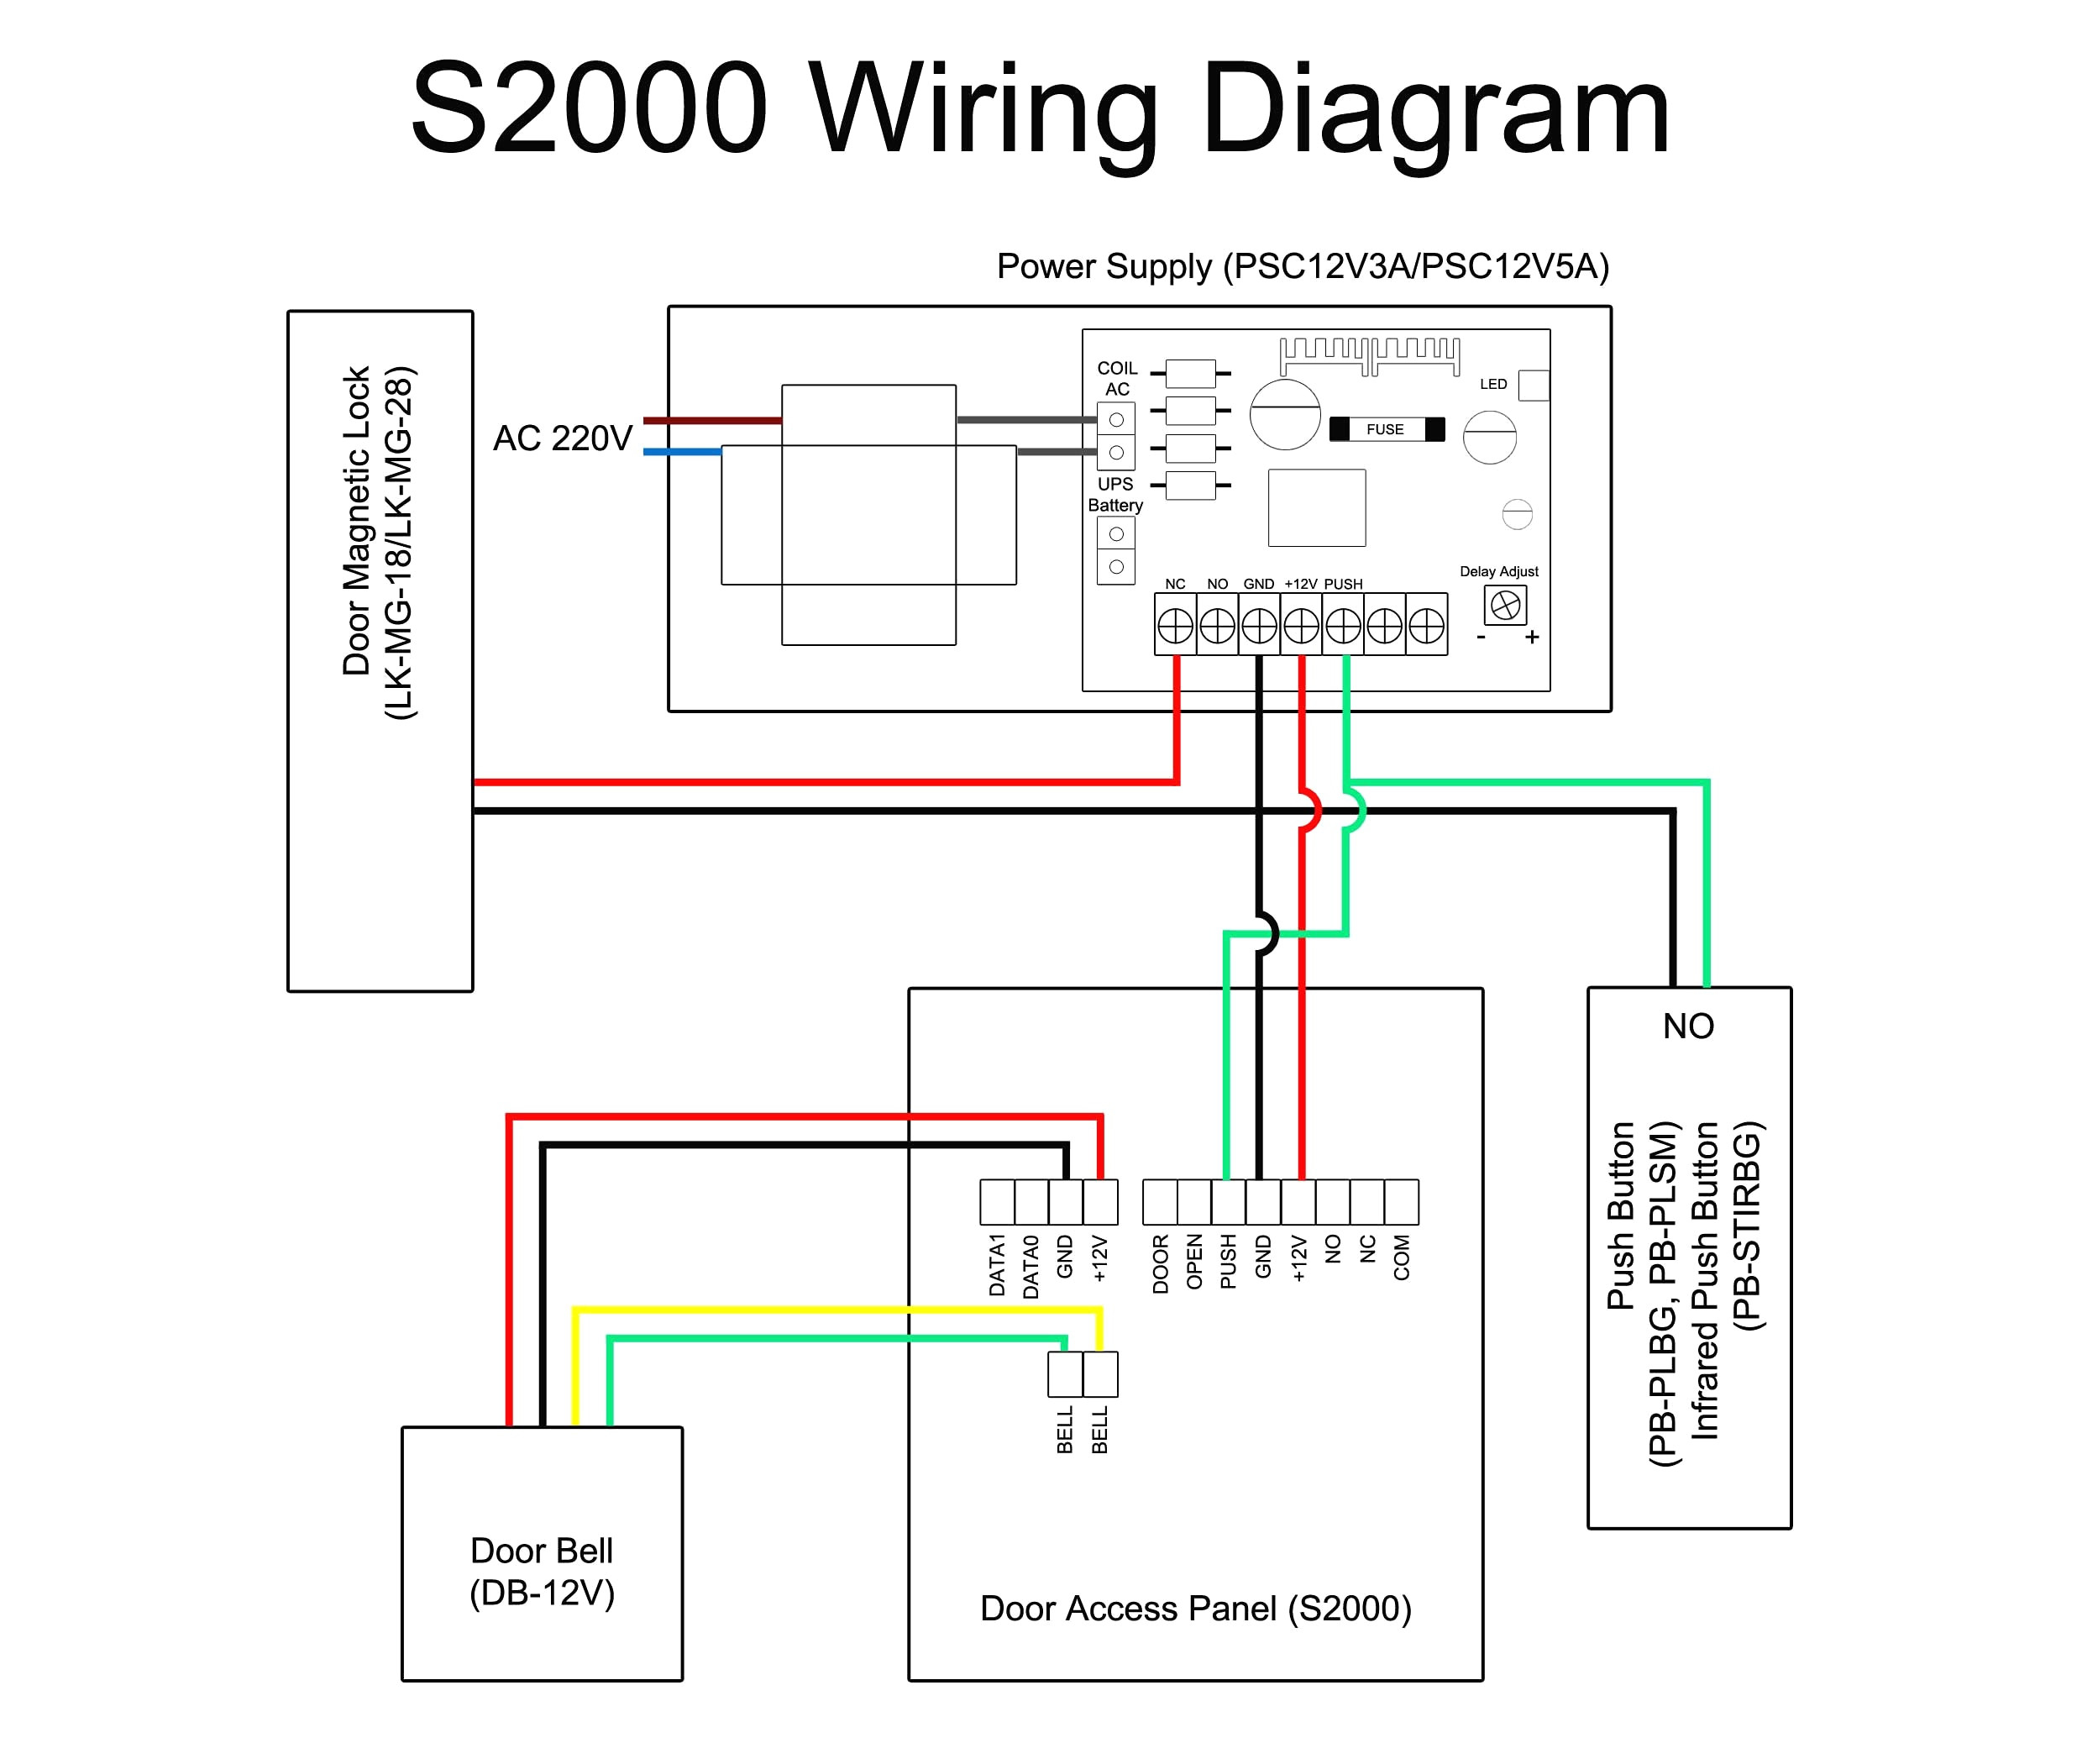 security camera wiring diagram Collection-Wiring Diagram for Alarm Pir Refrence Samsung Security Camera Wiring Diagram Health Shop 4-j